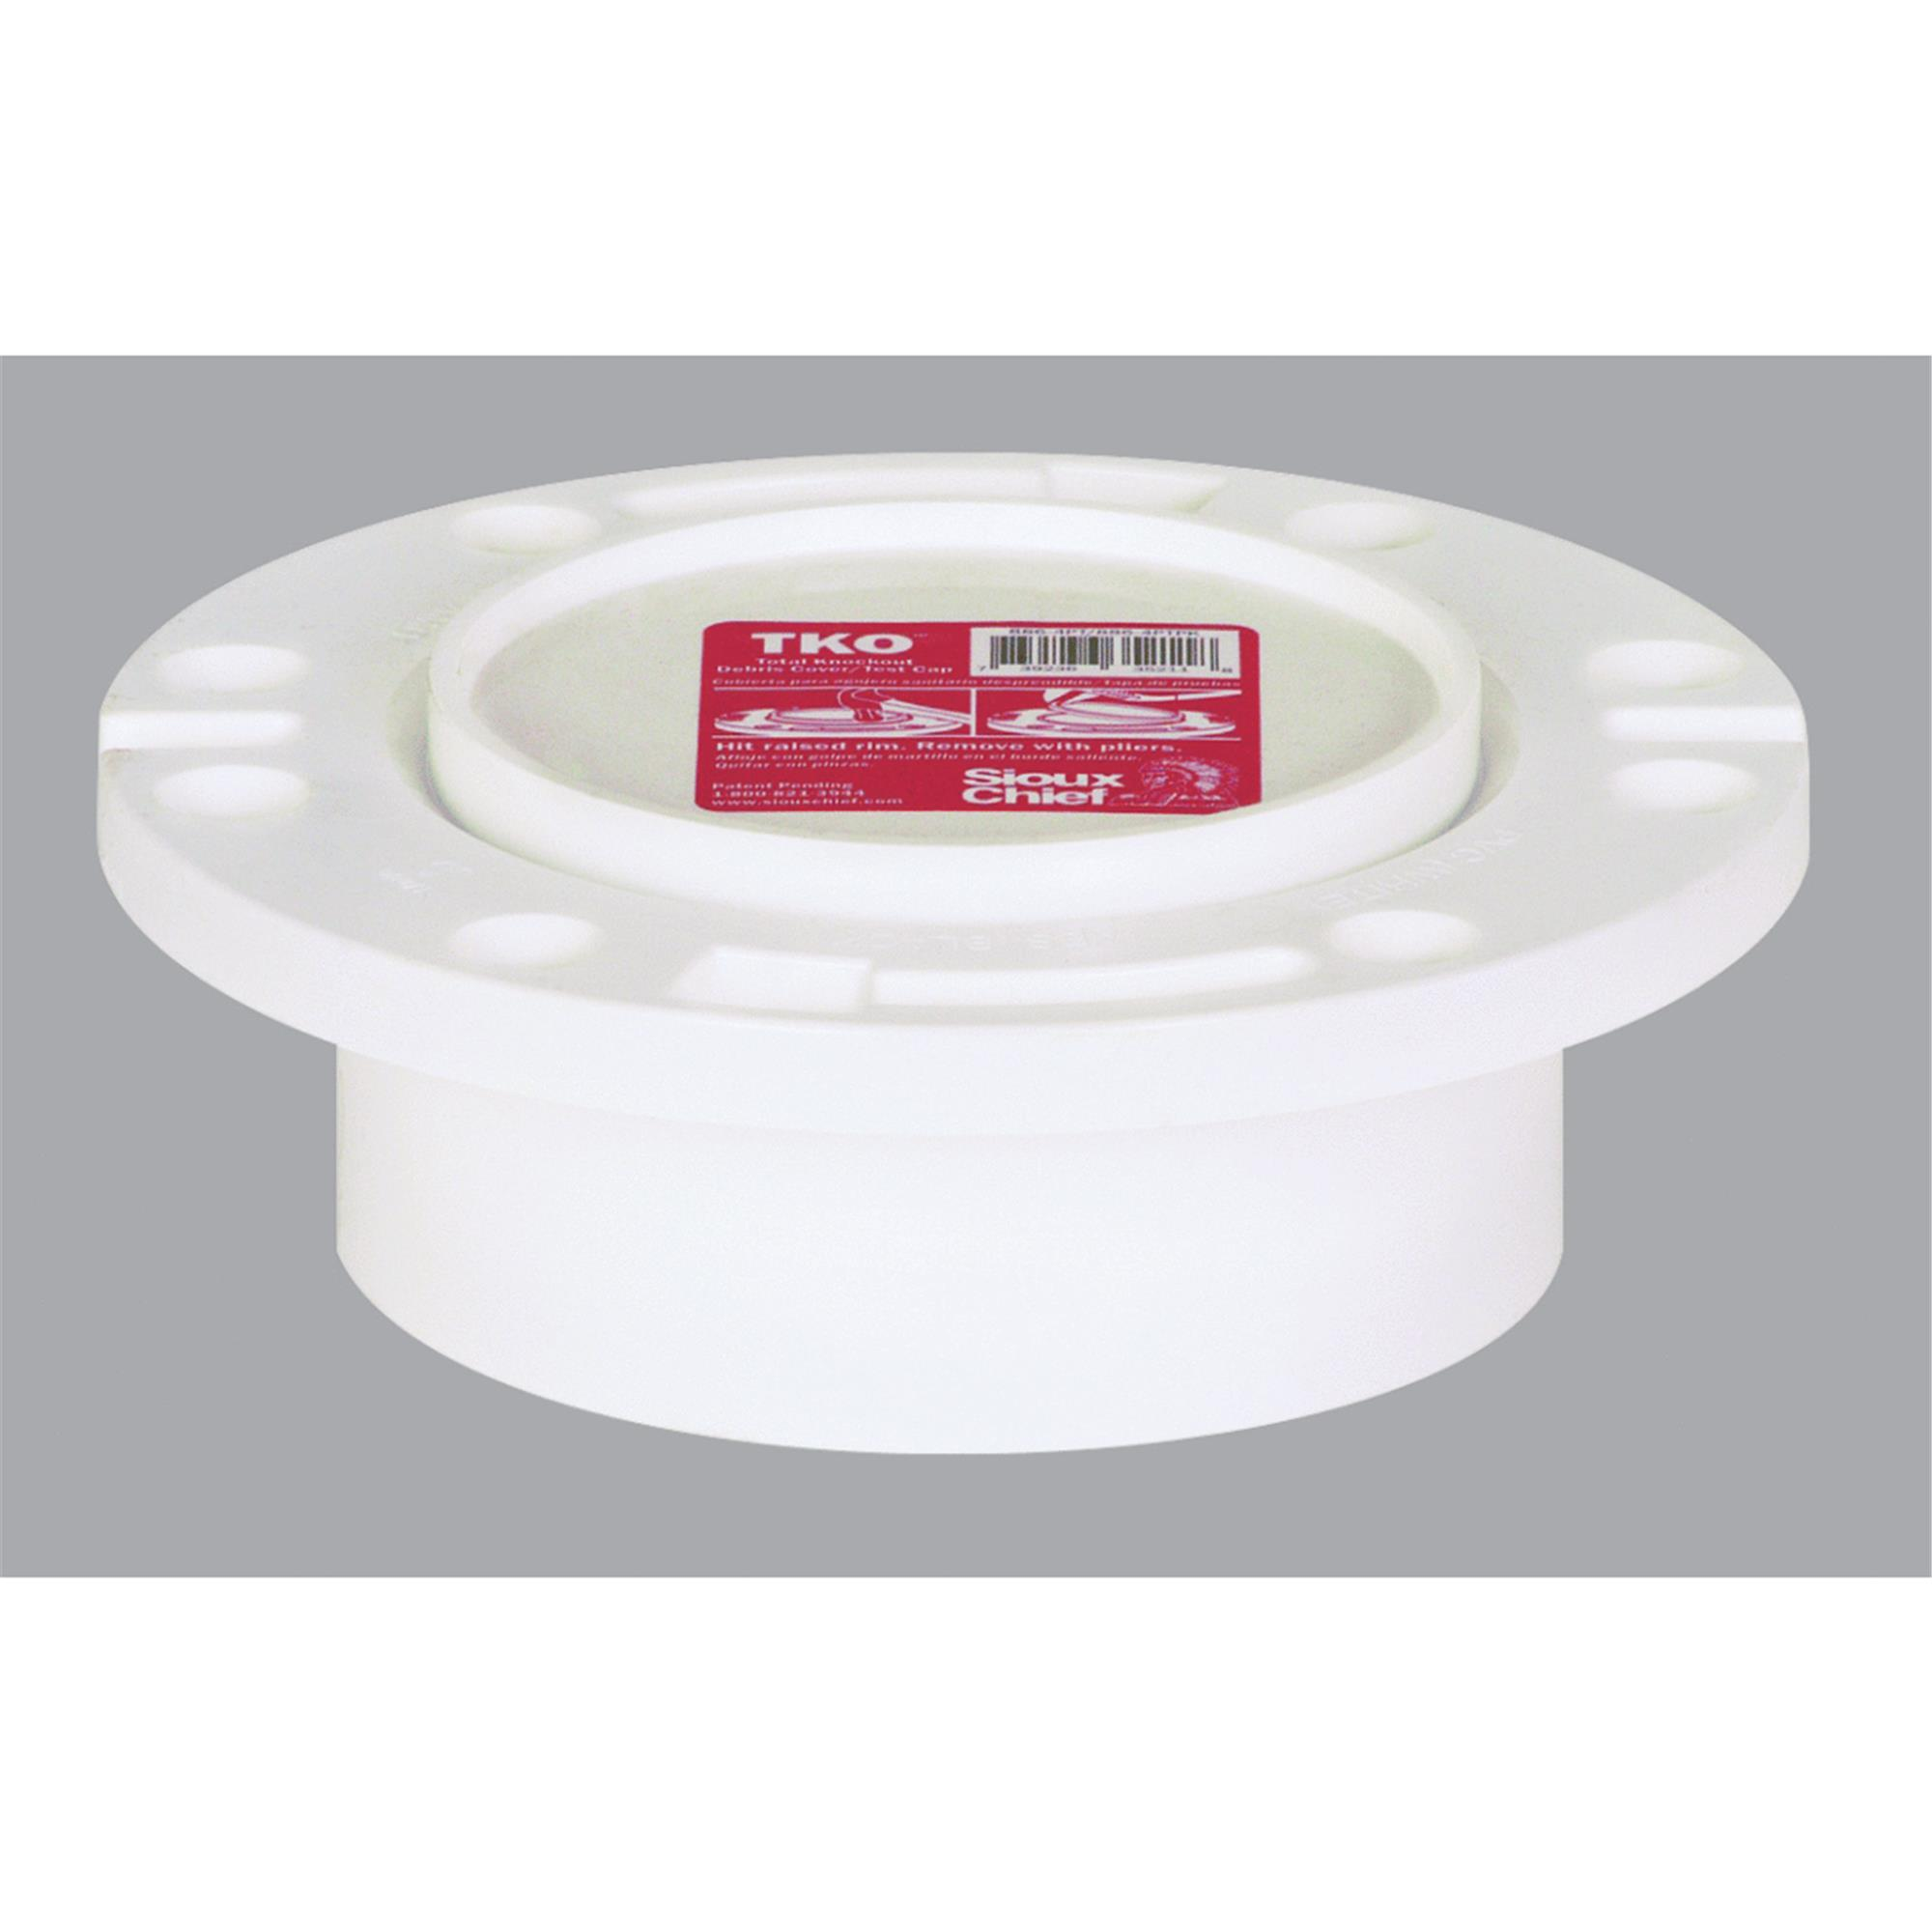 Sioux Chief PVC Total Knockout Flush To Floor Closet Flange by Sioux Chief